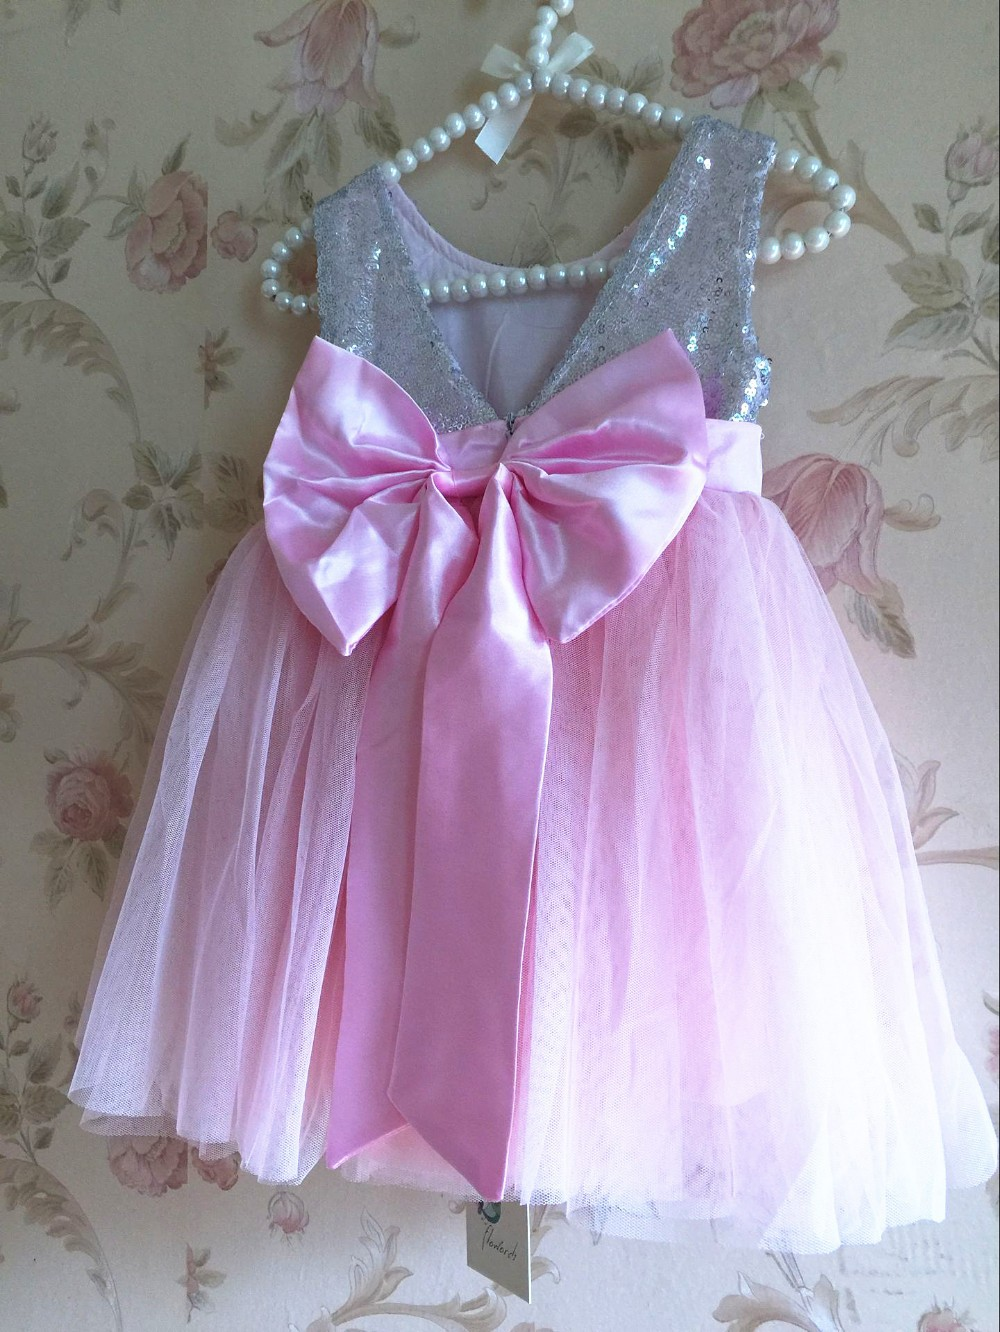 EMS DHL Free Shipping toddler Girl's Holiday Dress kids Sequin Bow Tulle dress Princess Sleeveless Kids Clothing Party Dress(China (Mainland))